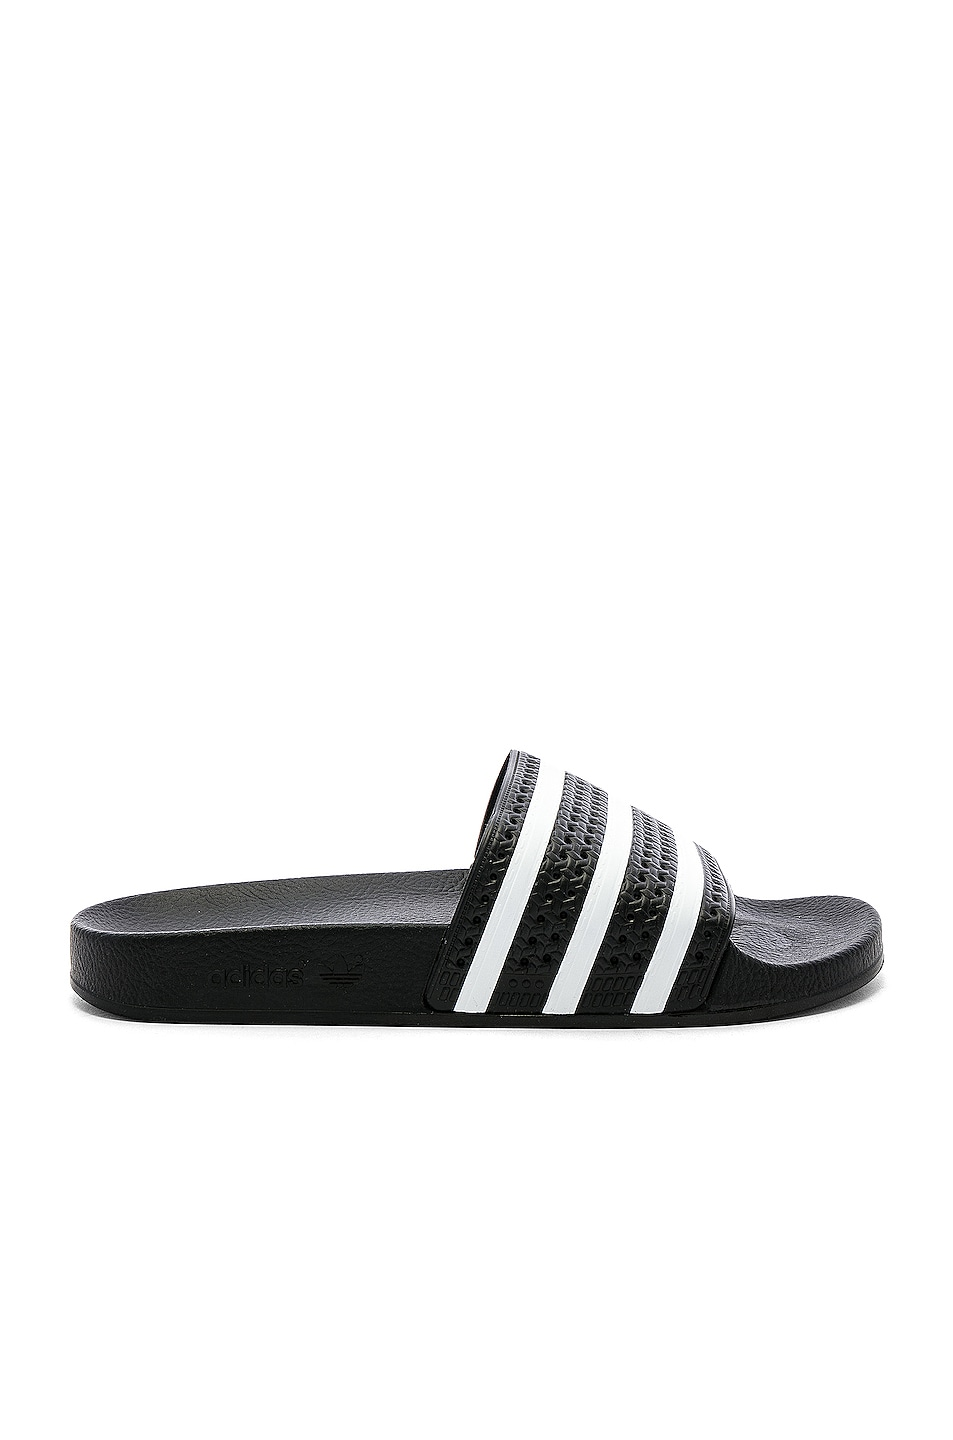 Image 1 of adidas Originals Adilette in Black & White & Black